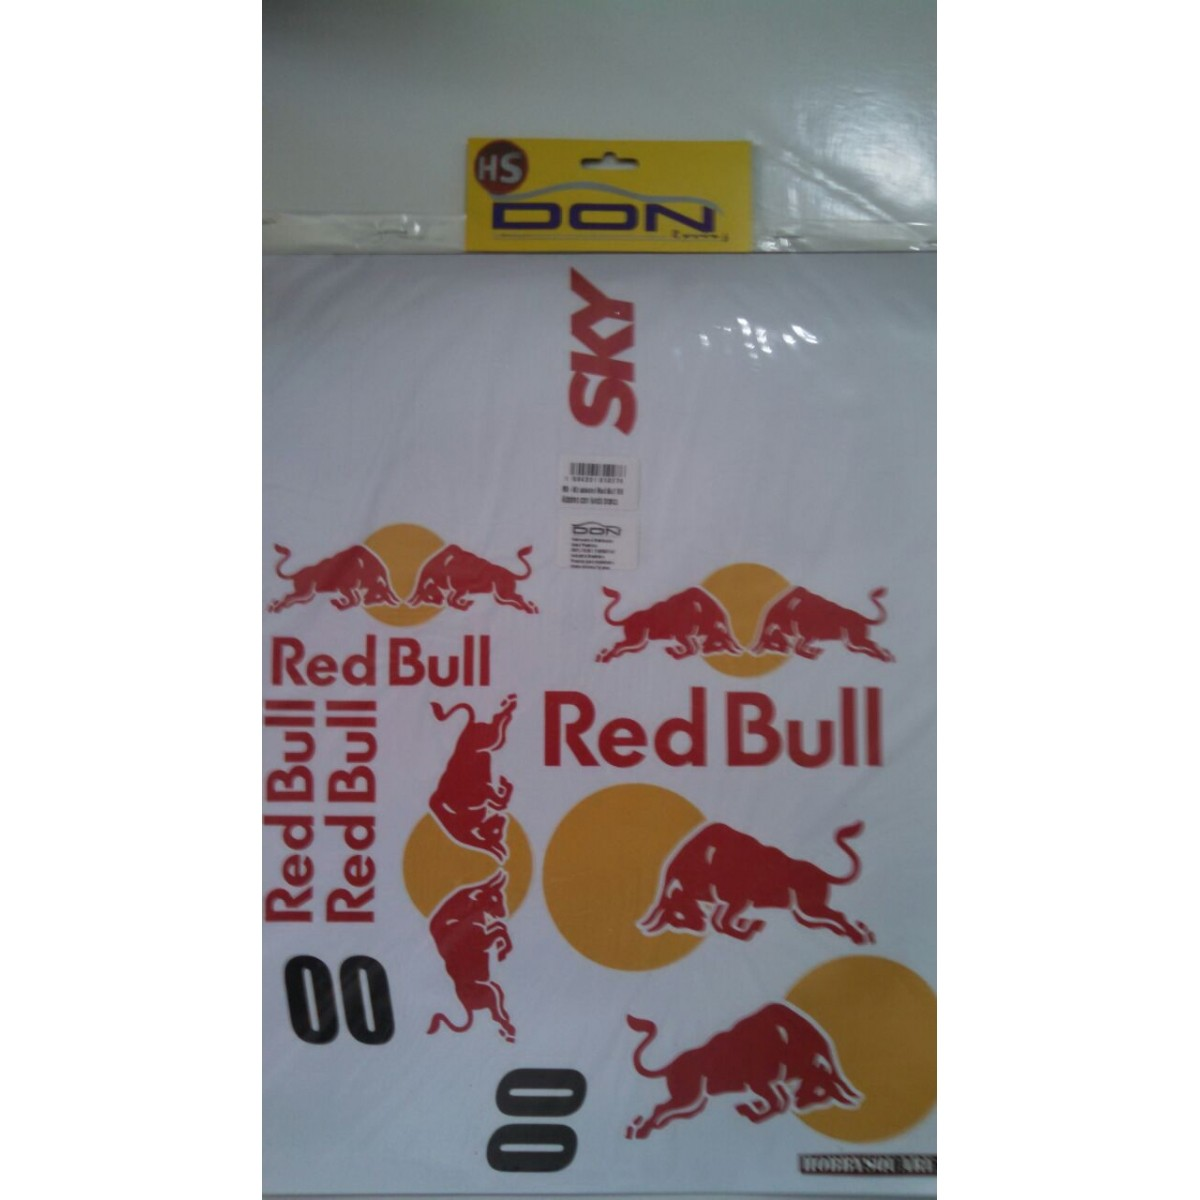 RB1 - Kit adesivo Red Bull 1/10 - 150x200mm